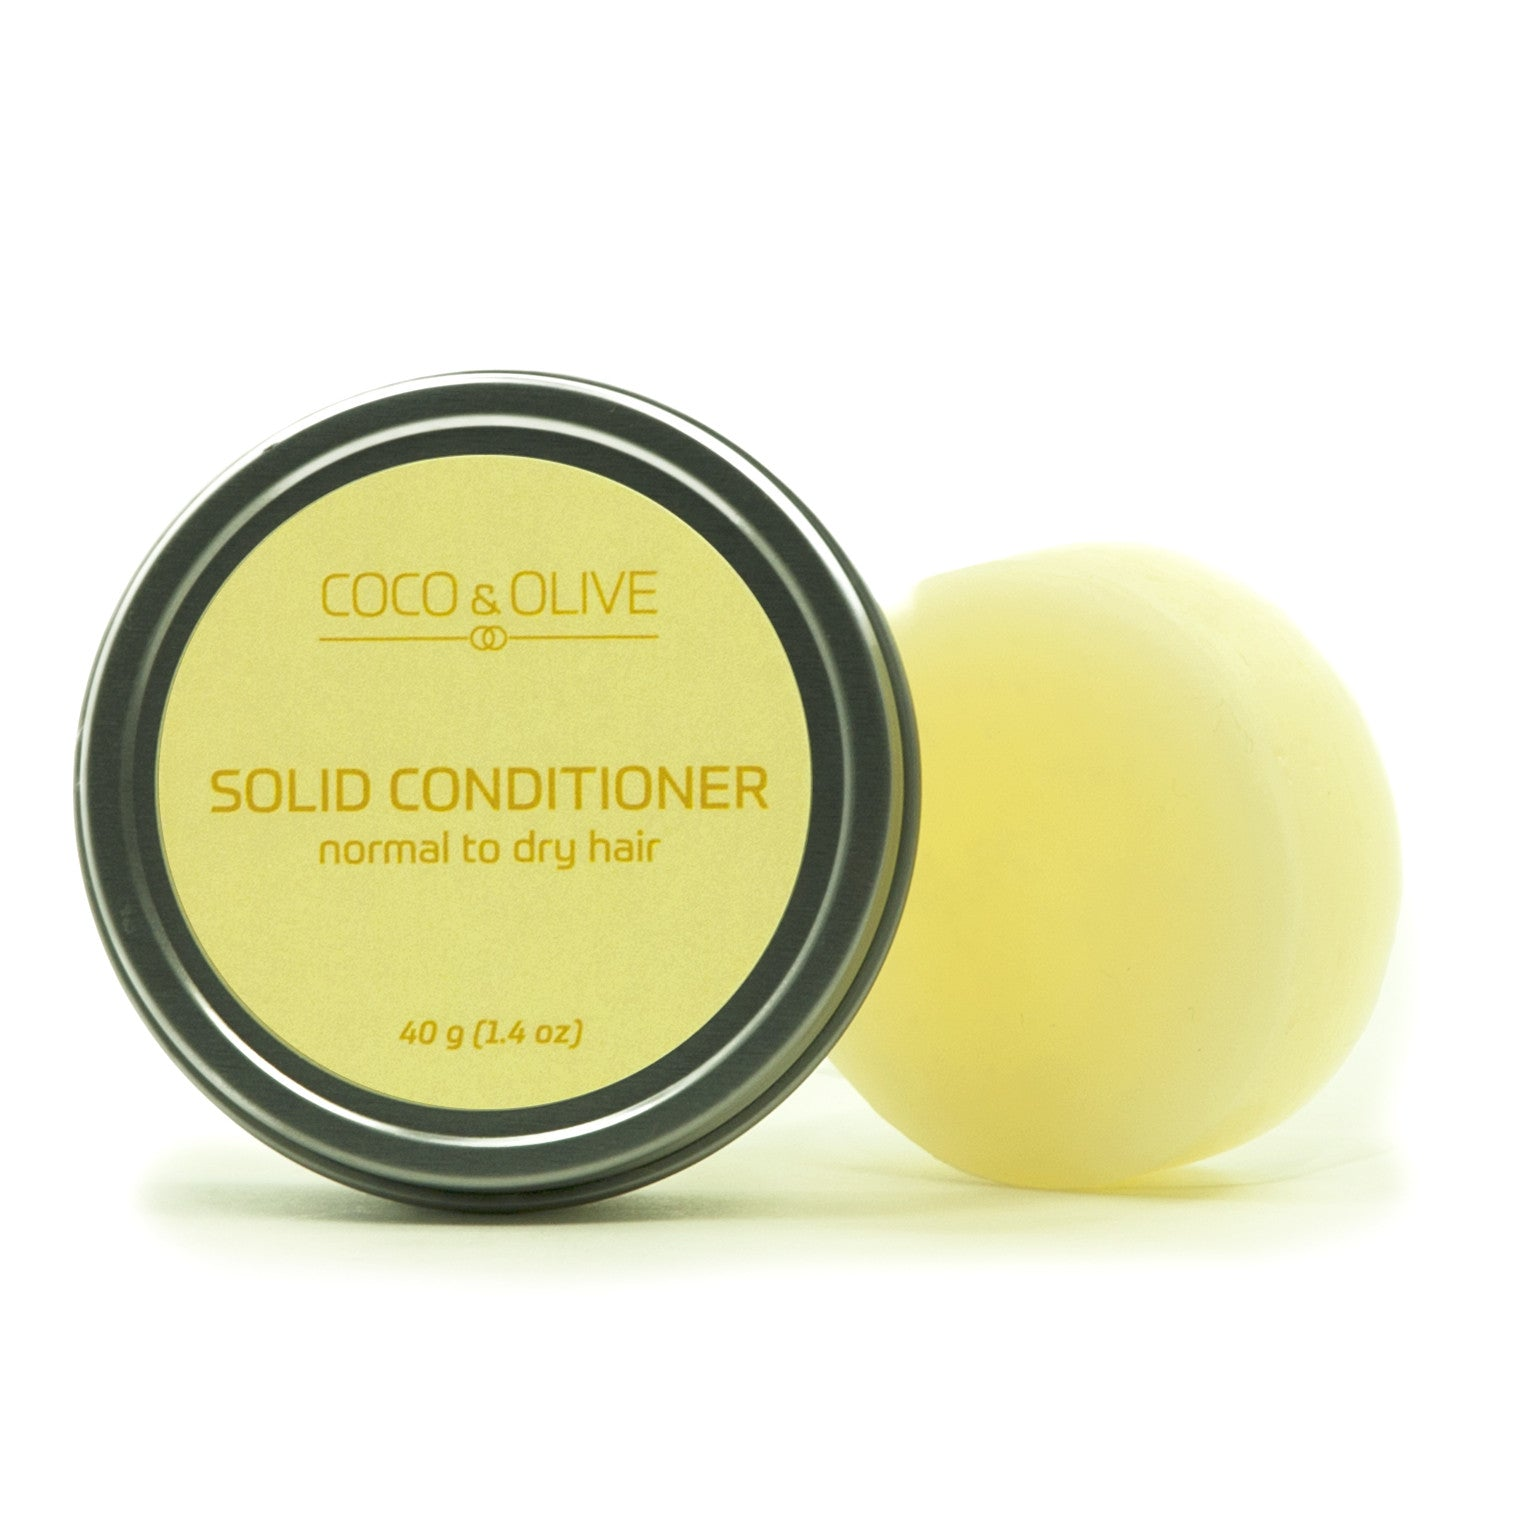 Coco & Olive Solid Conditioner Normal to Dry hair. This bar is designed to tame unruly, dry, frizzy hair into submission.